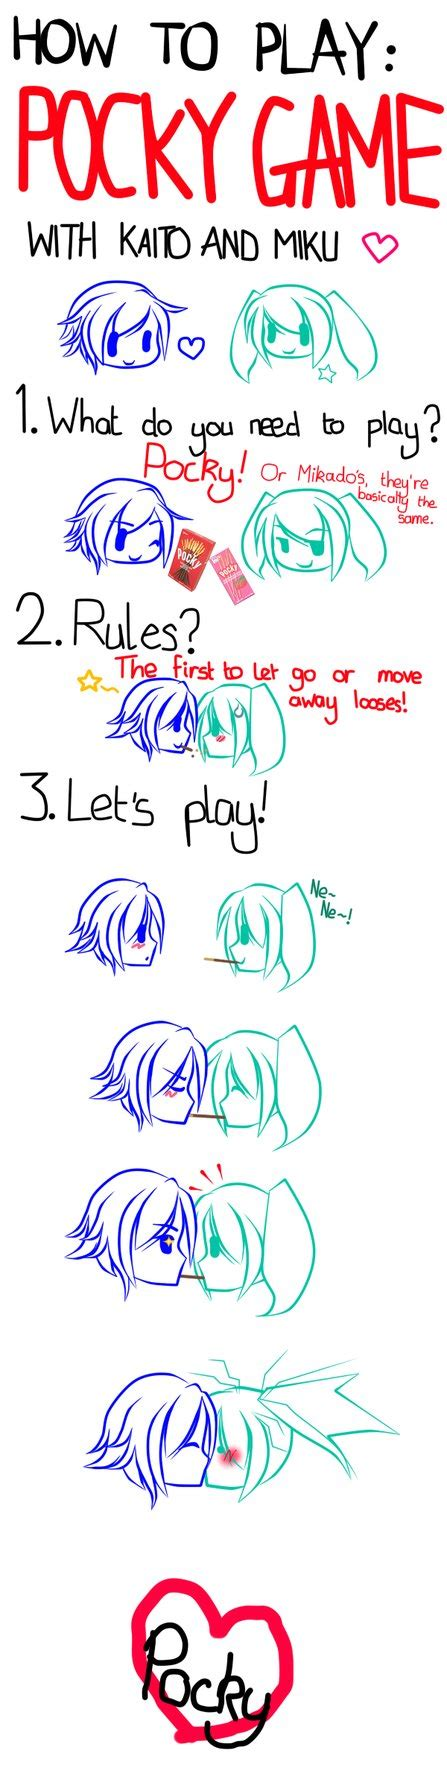 how to play how to play pocky with kaito and miku by